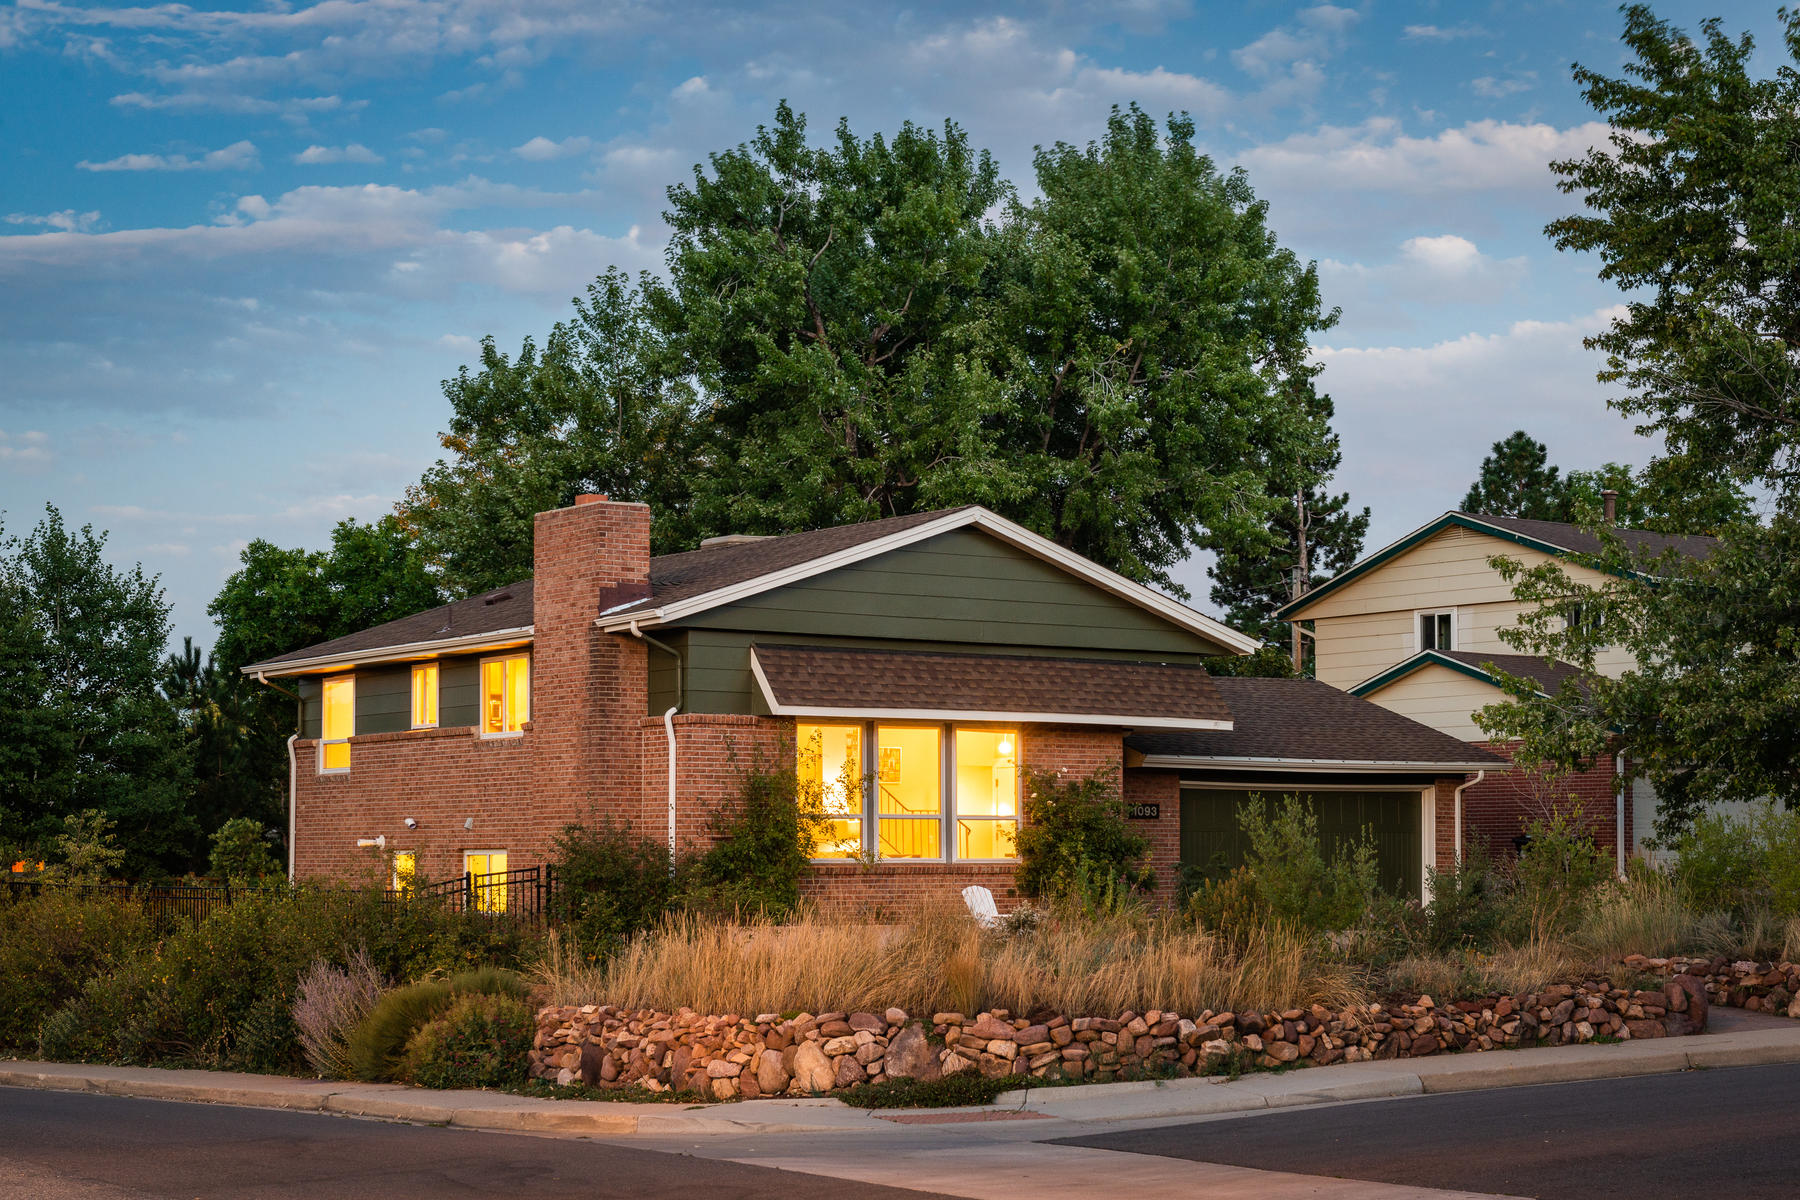 Property for Active at Fabulous MID CENTURY MODERN 1093 Yale Cir Boulder, Colorado 80305 United States